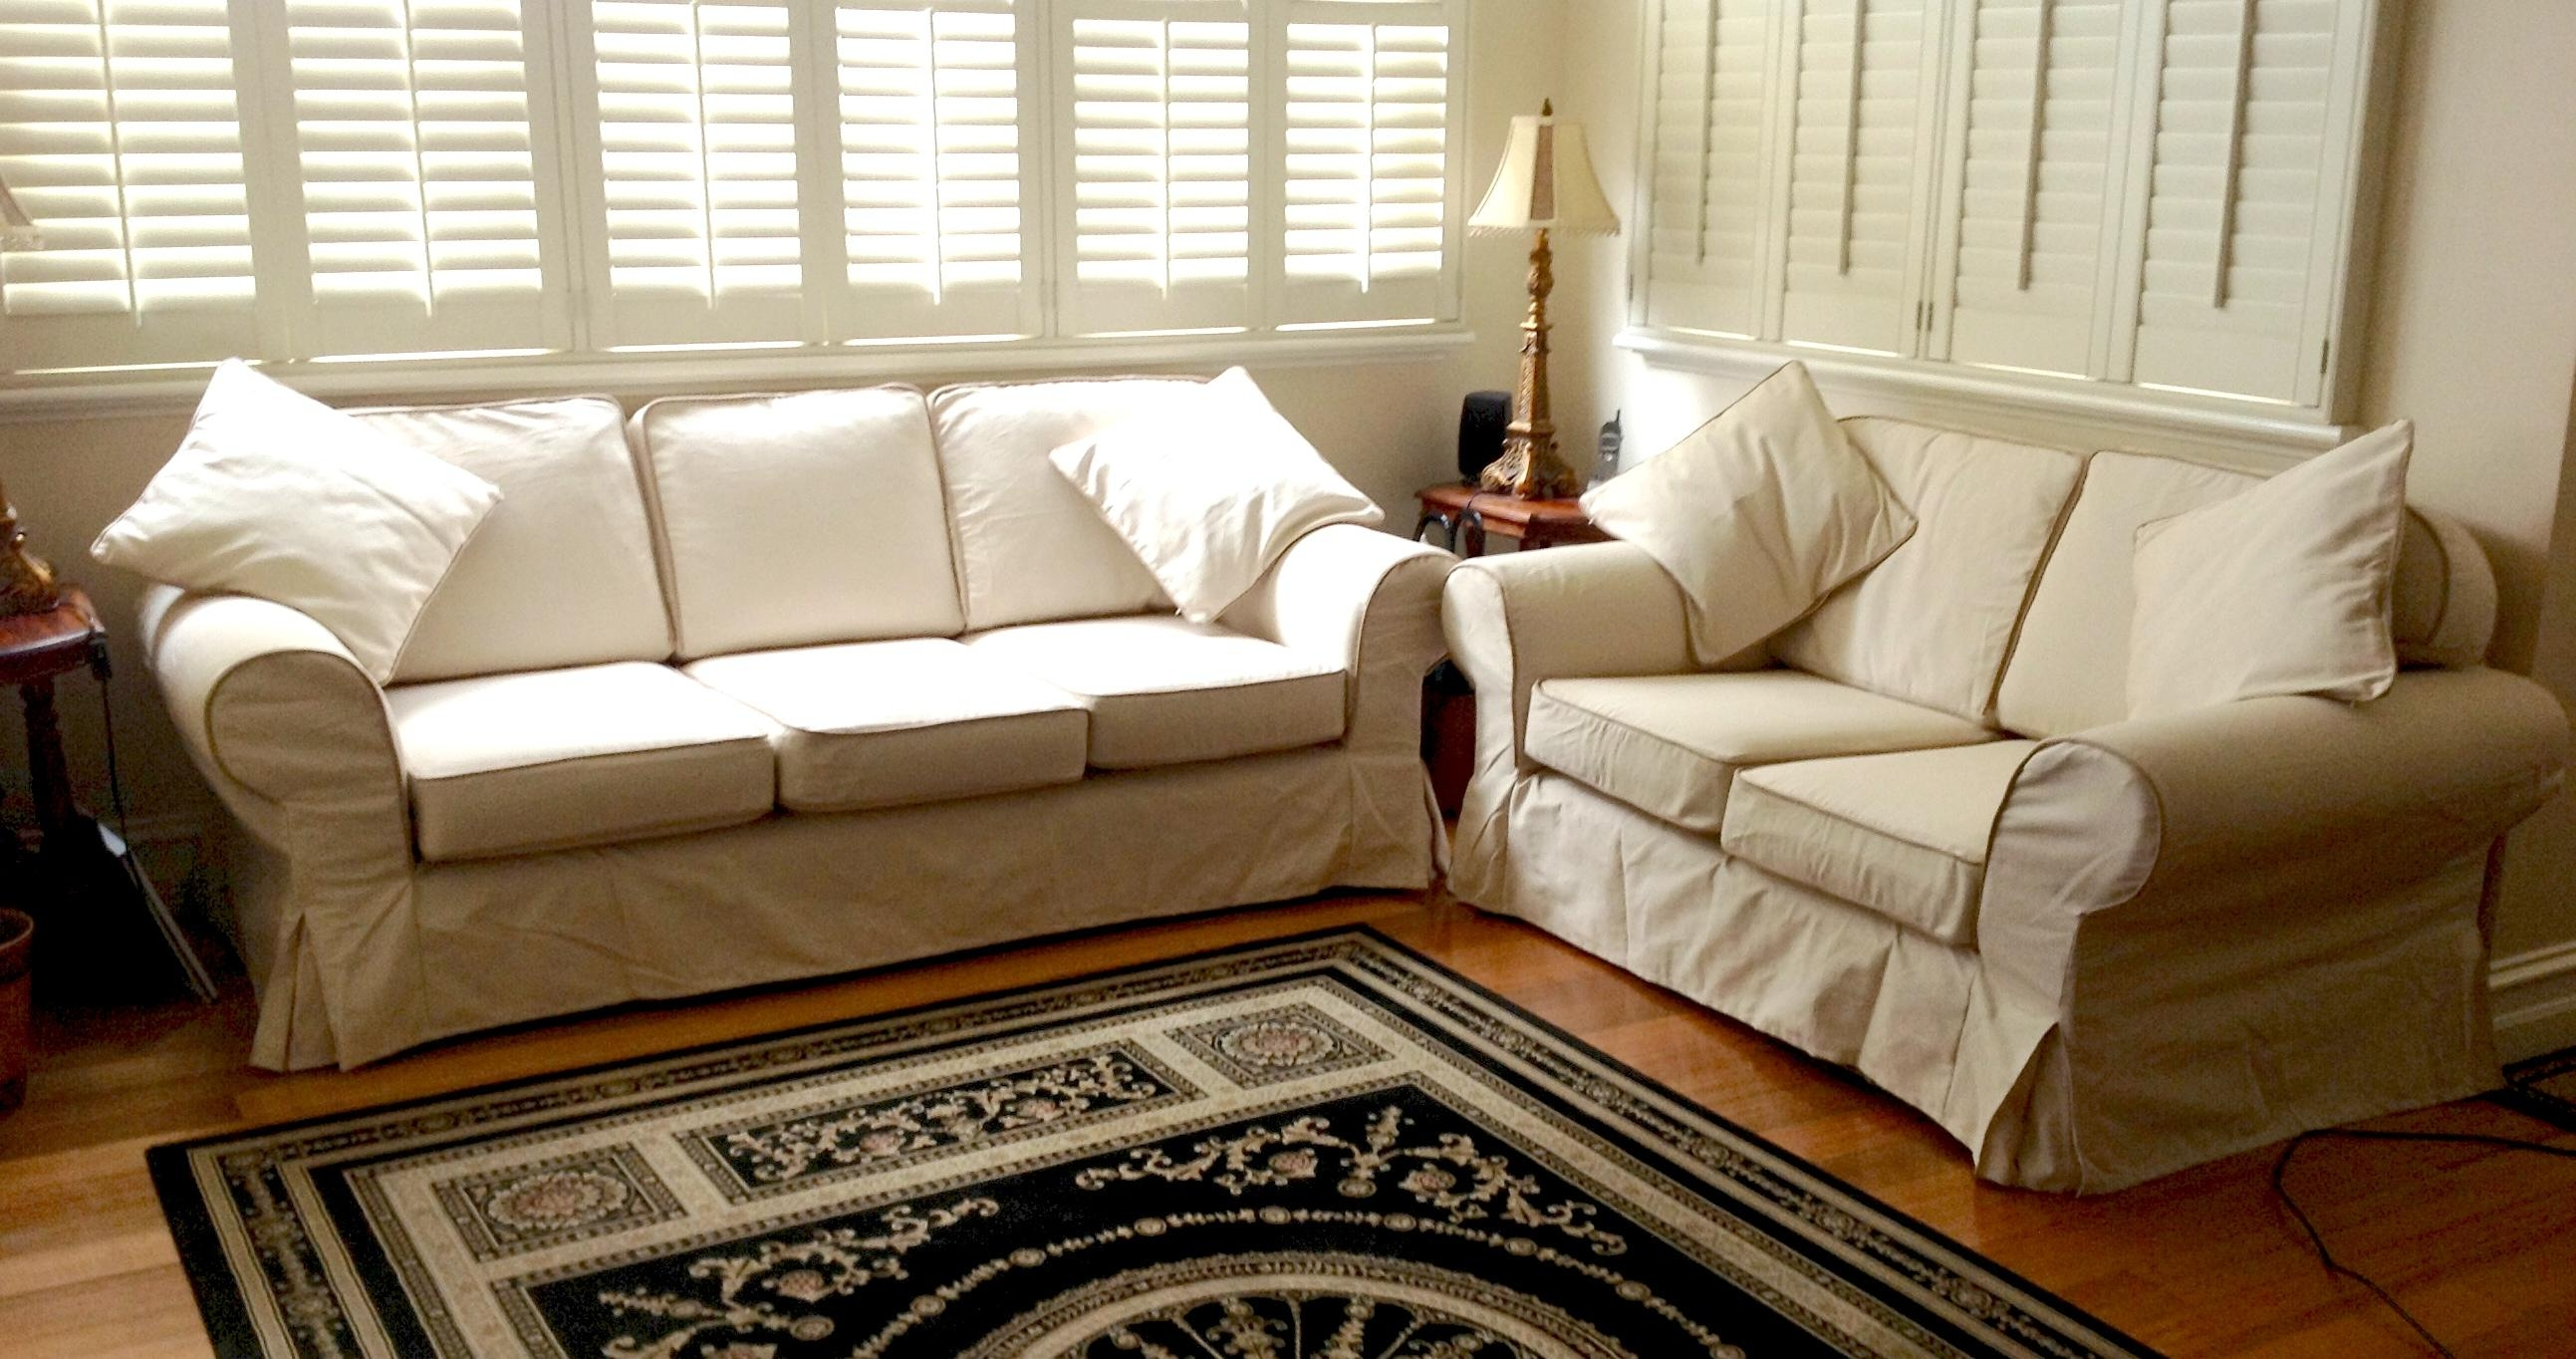 Custom Slipcovers And Couch Cover For Any Sofa Online For Sofa Loveseat Slipcovers (View 5 of 25)